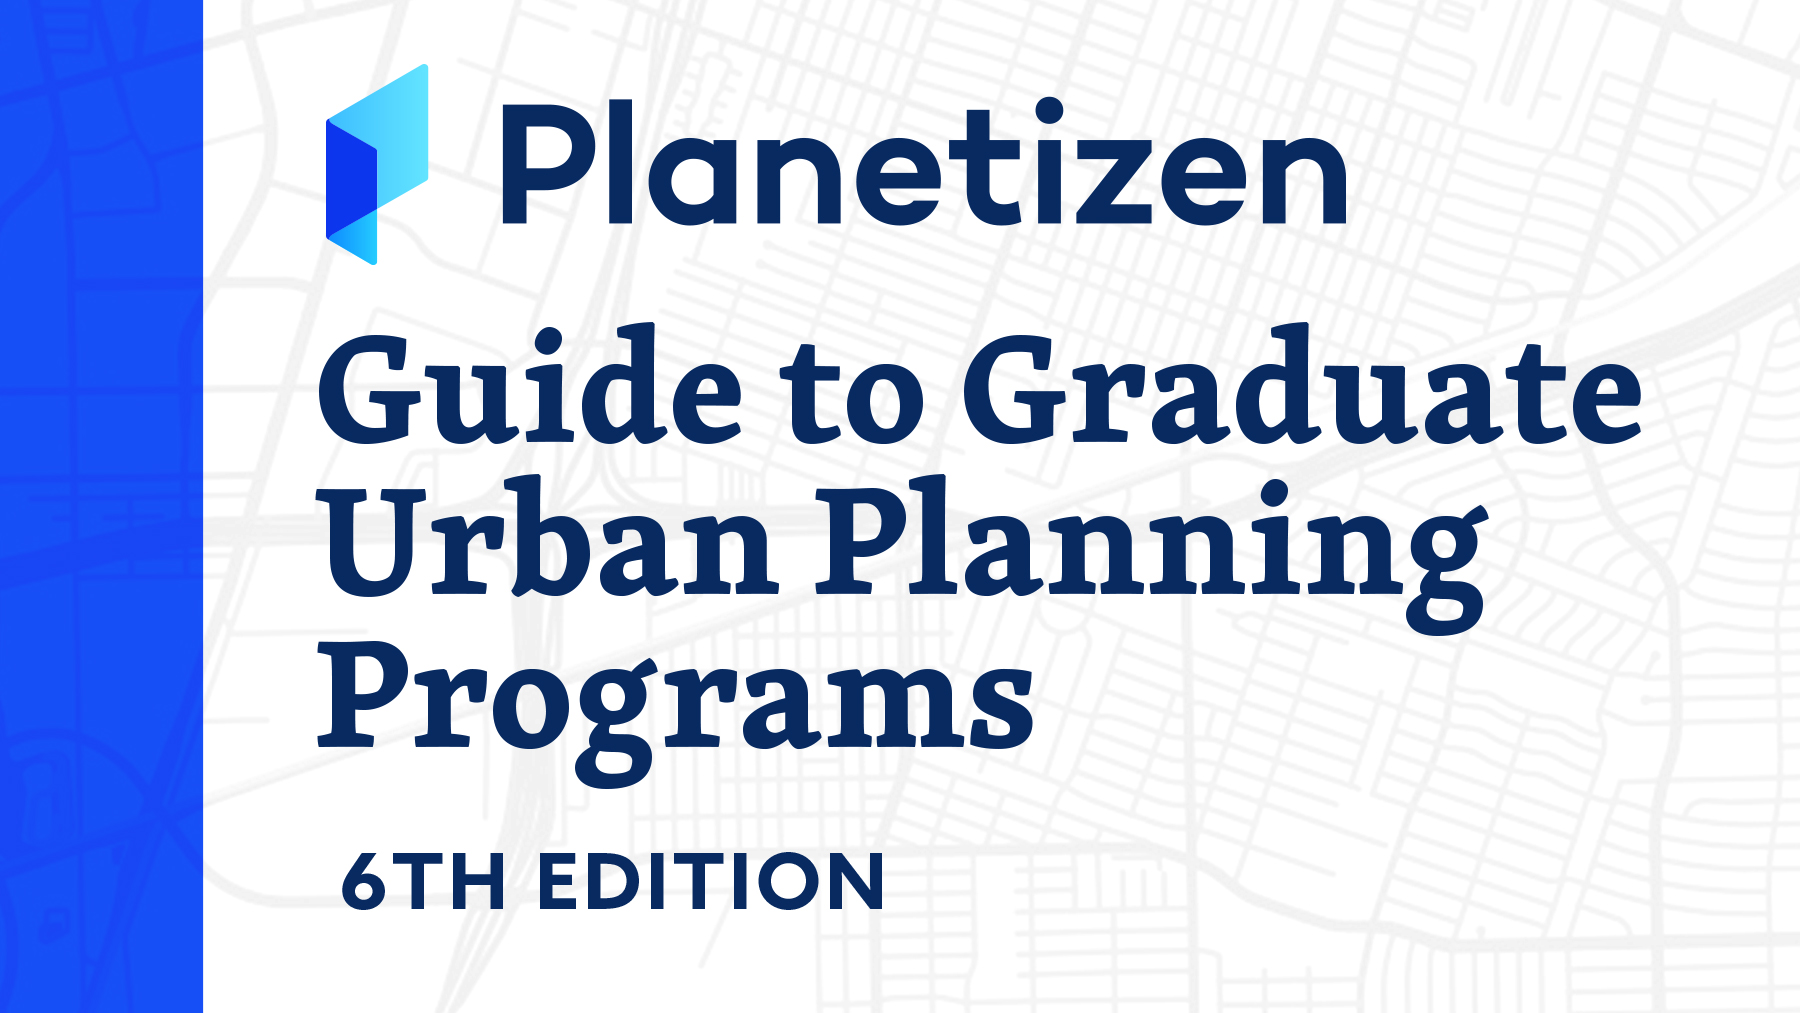 A Harvard University Guide To Executive >> The Top Schools For Urban Planners Features Planetizen